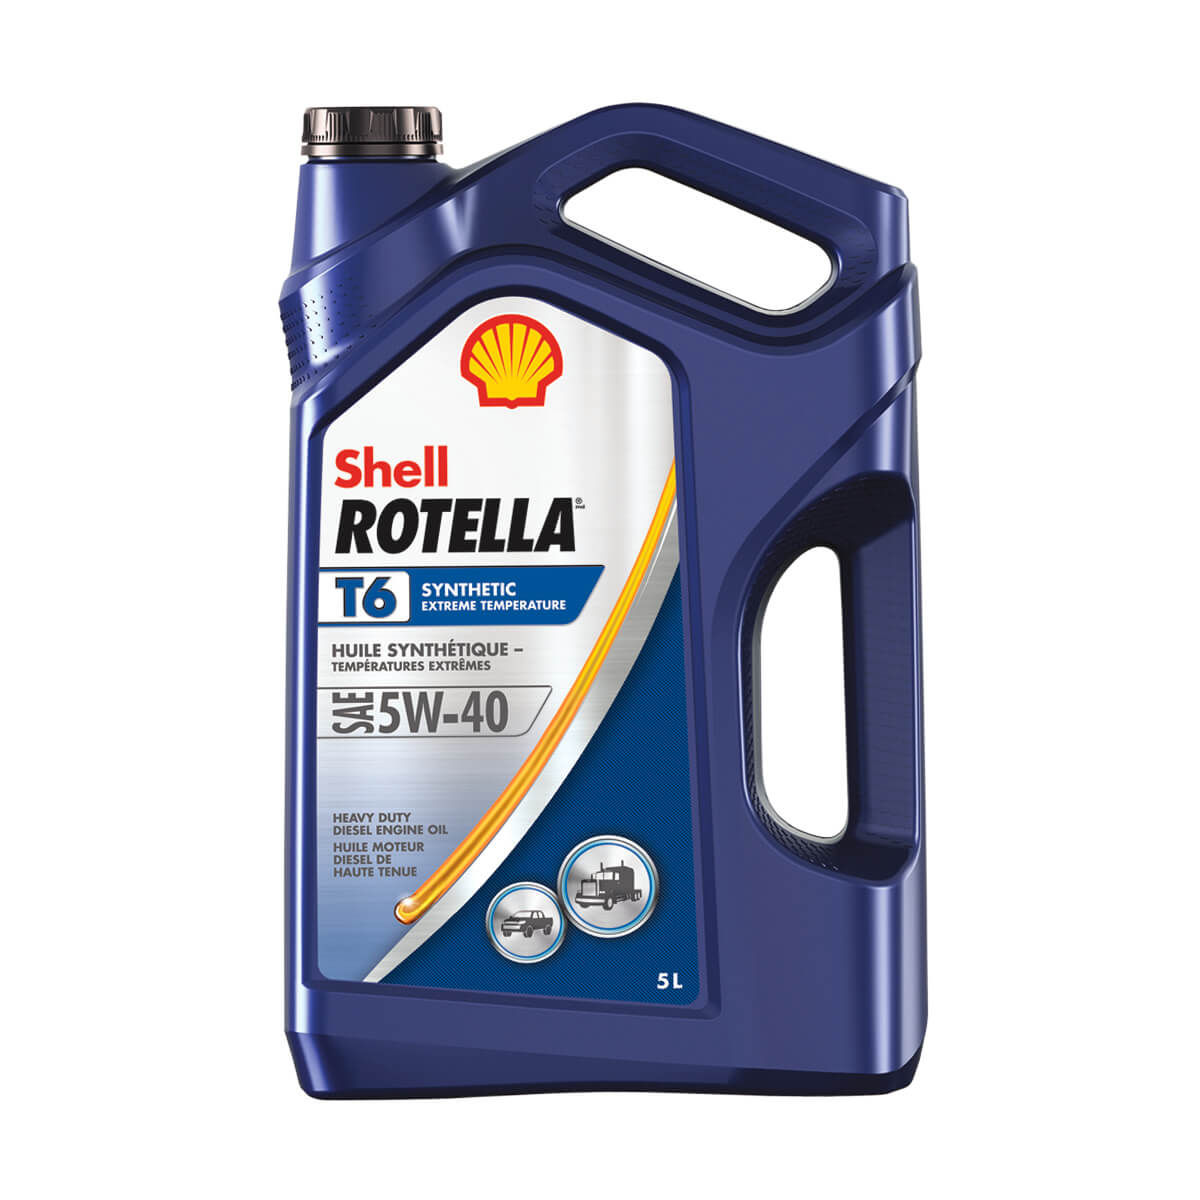 Shell Rotella T6 Triple Protection Synthetic 5W-40 - 5 L